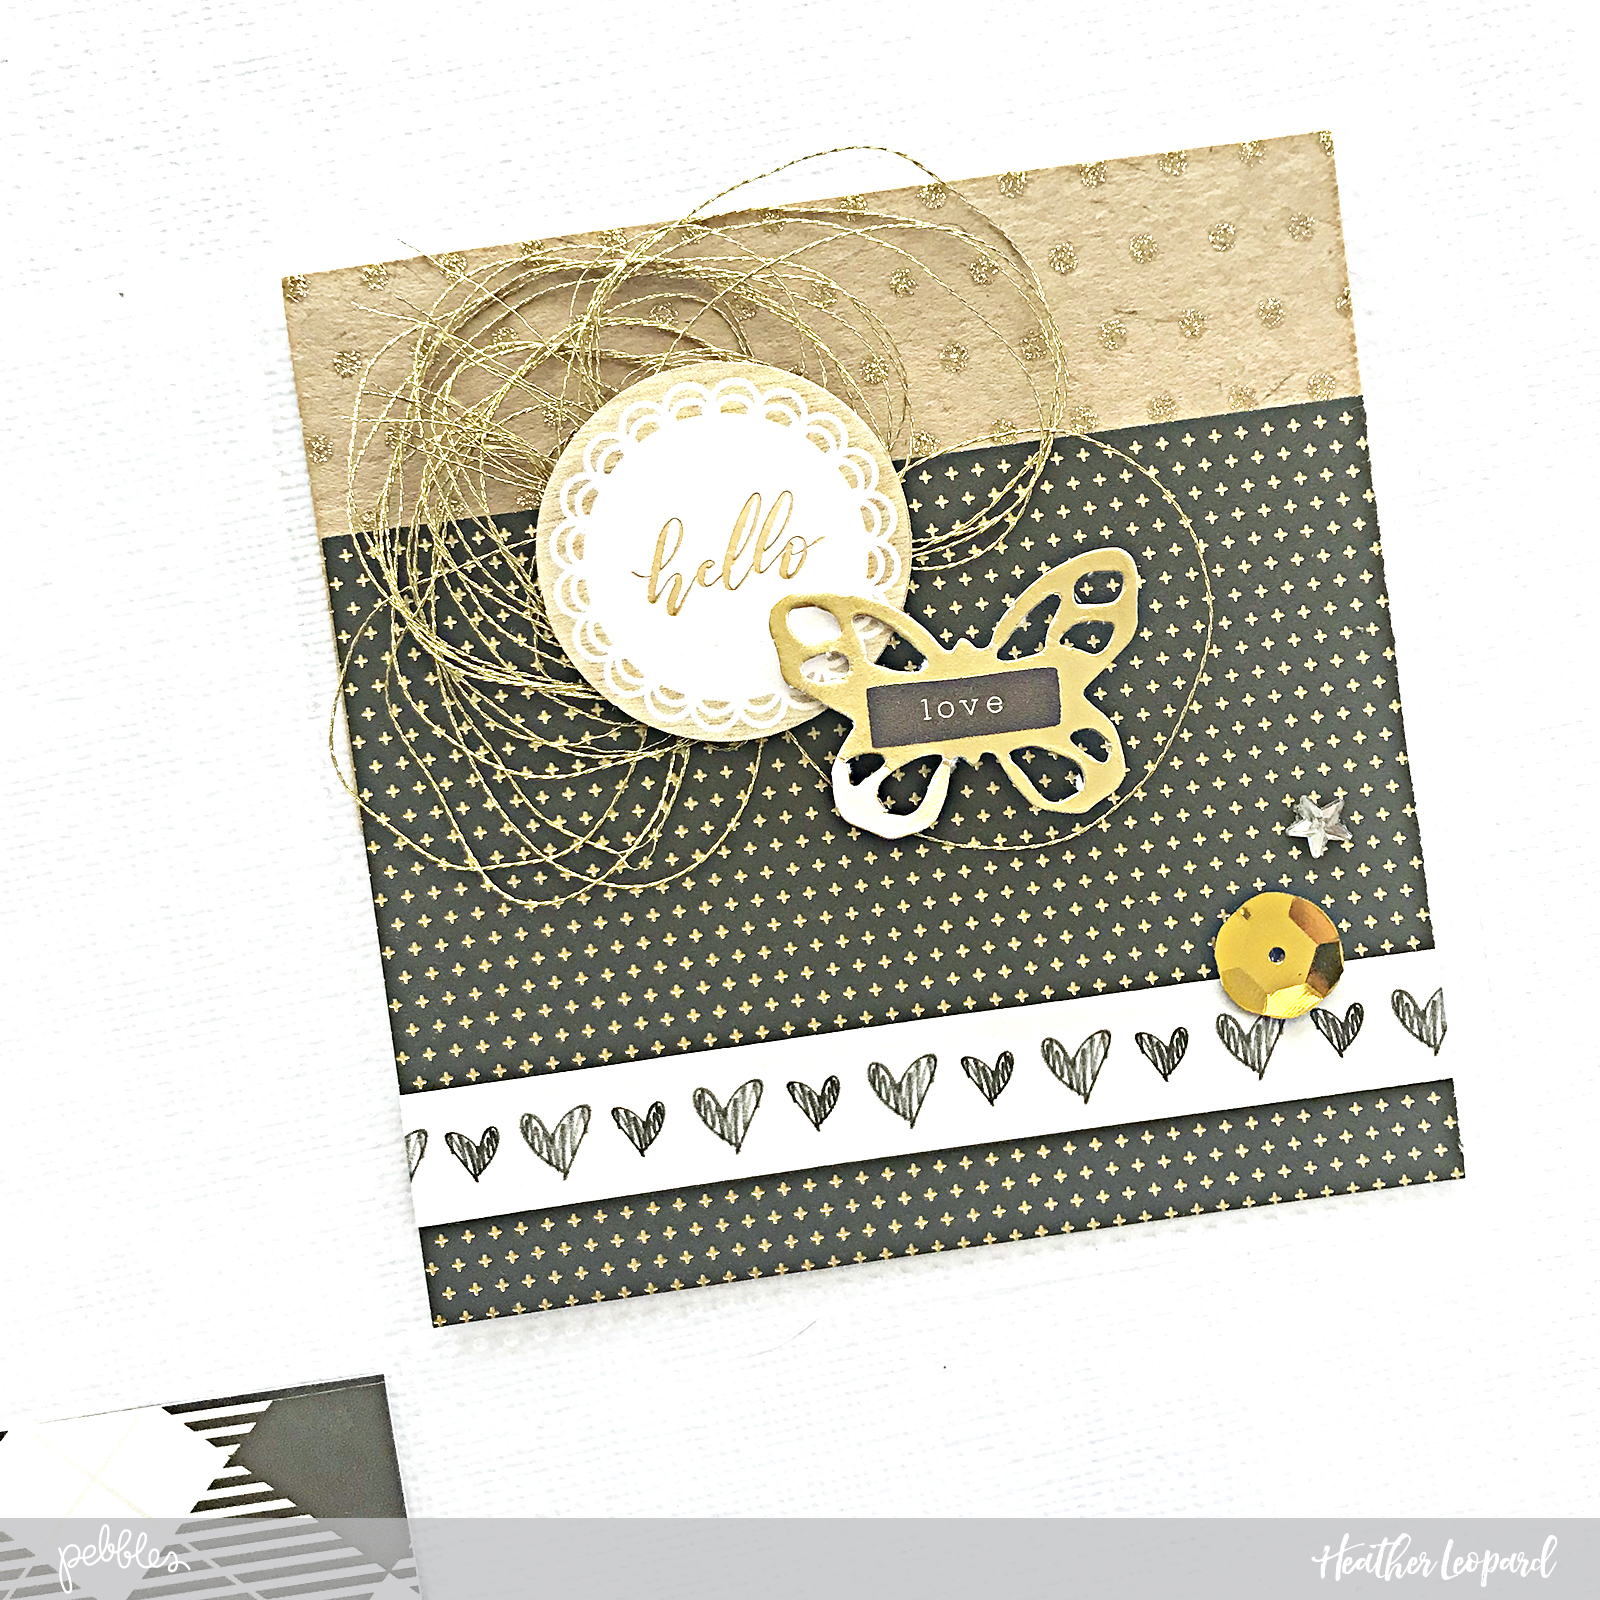 New Years Resolutions Pocket Page by @Heather Leopard for @PebblesInc #madewithpebbles #2018 #2018resolution #resolutions #scrapbooking #scrapbook #pocketpage #projectlife